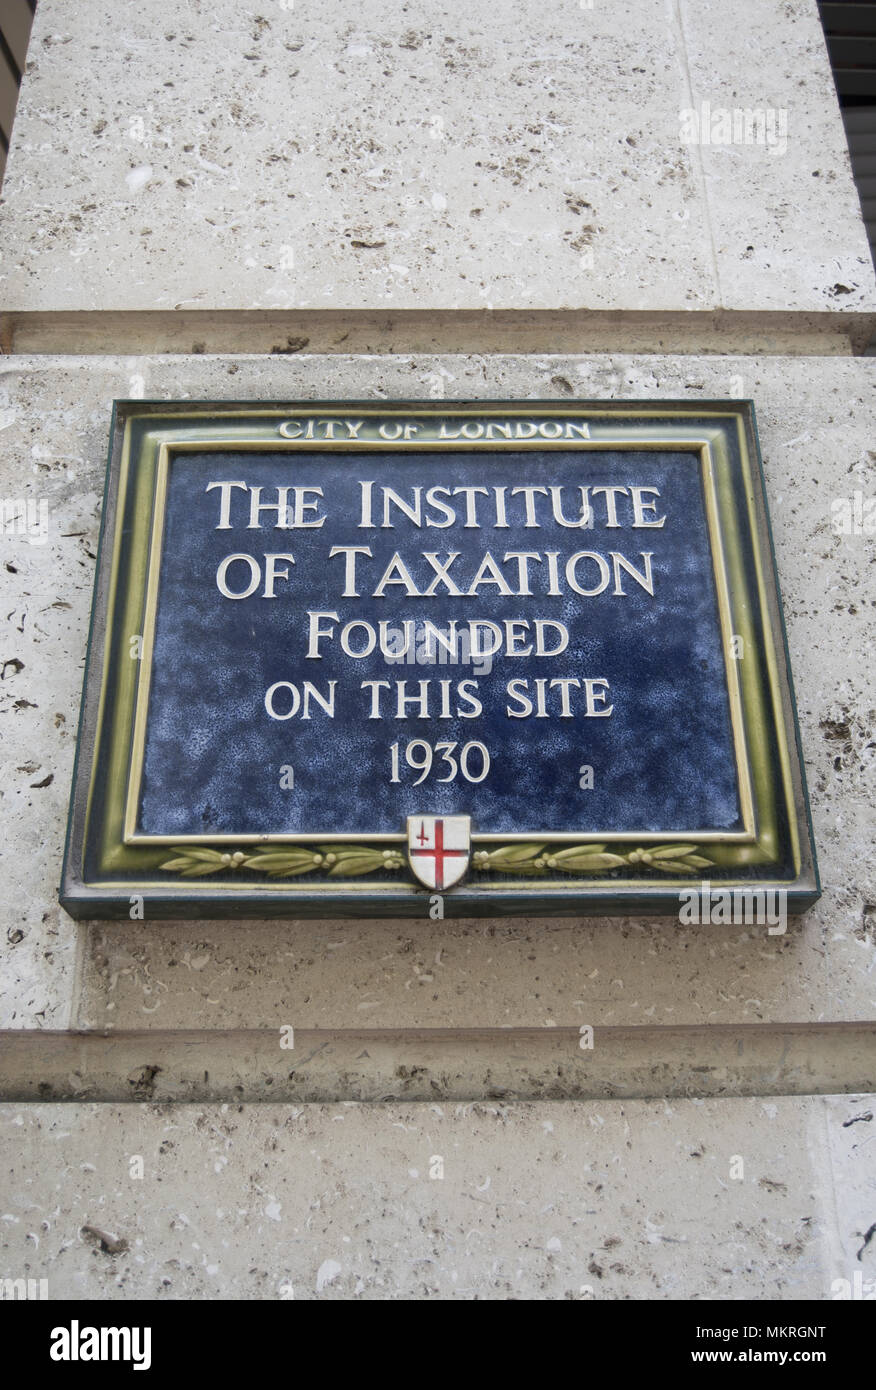 city of london blue plaque marking the site where in 1930 the institute of taxation was founded - Stock Image